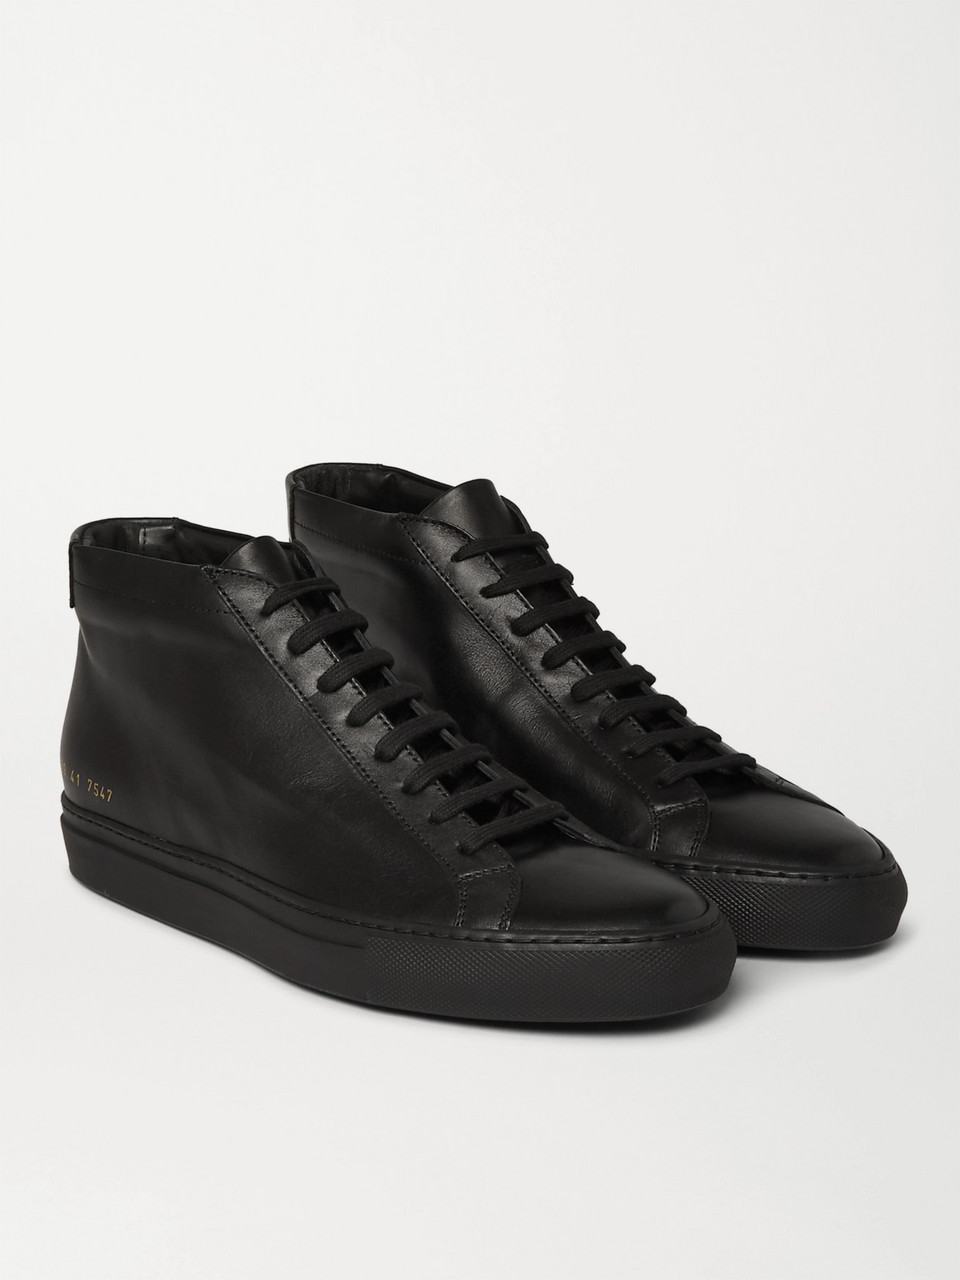 Common Projects Original Achilles Leather High-Top Sneakers